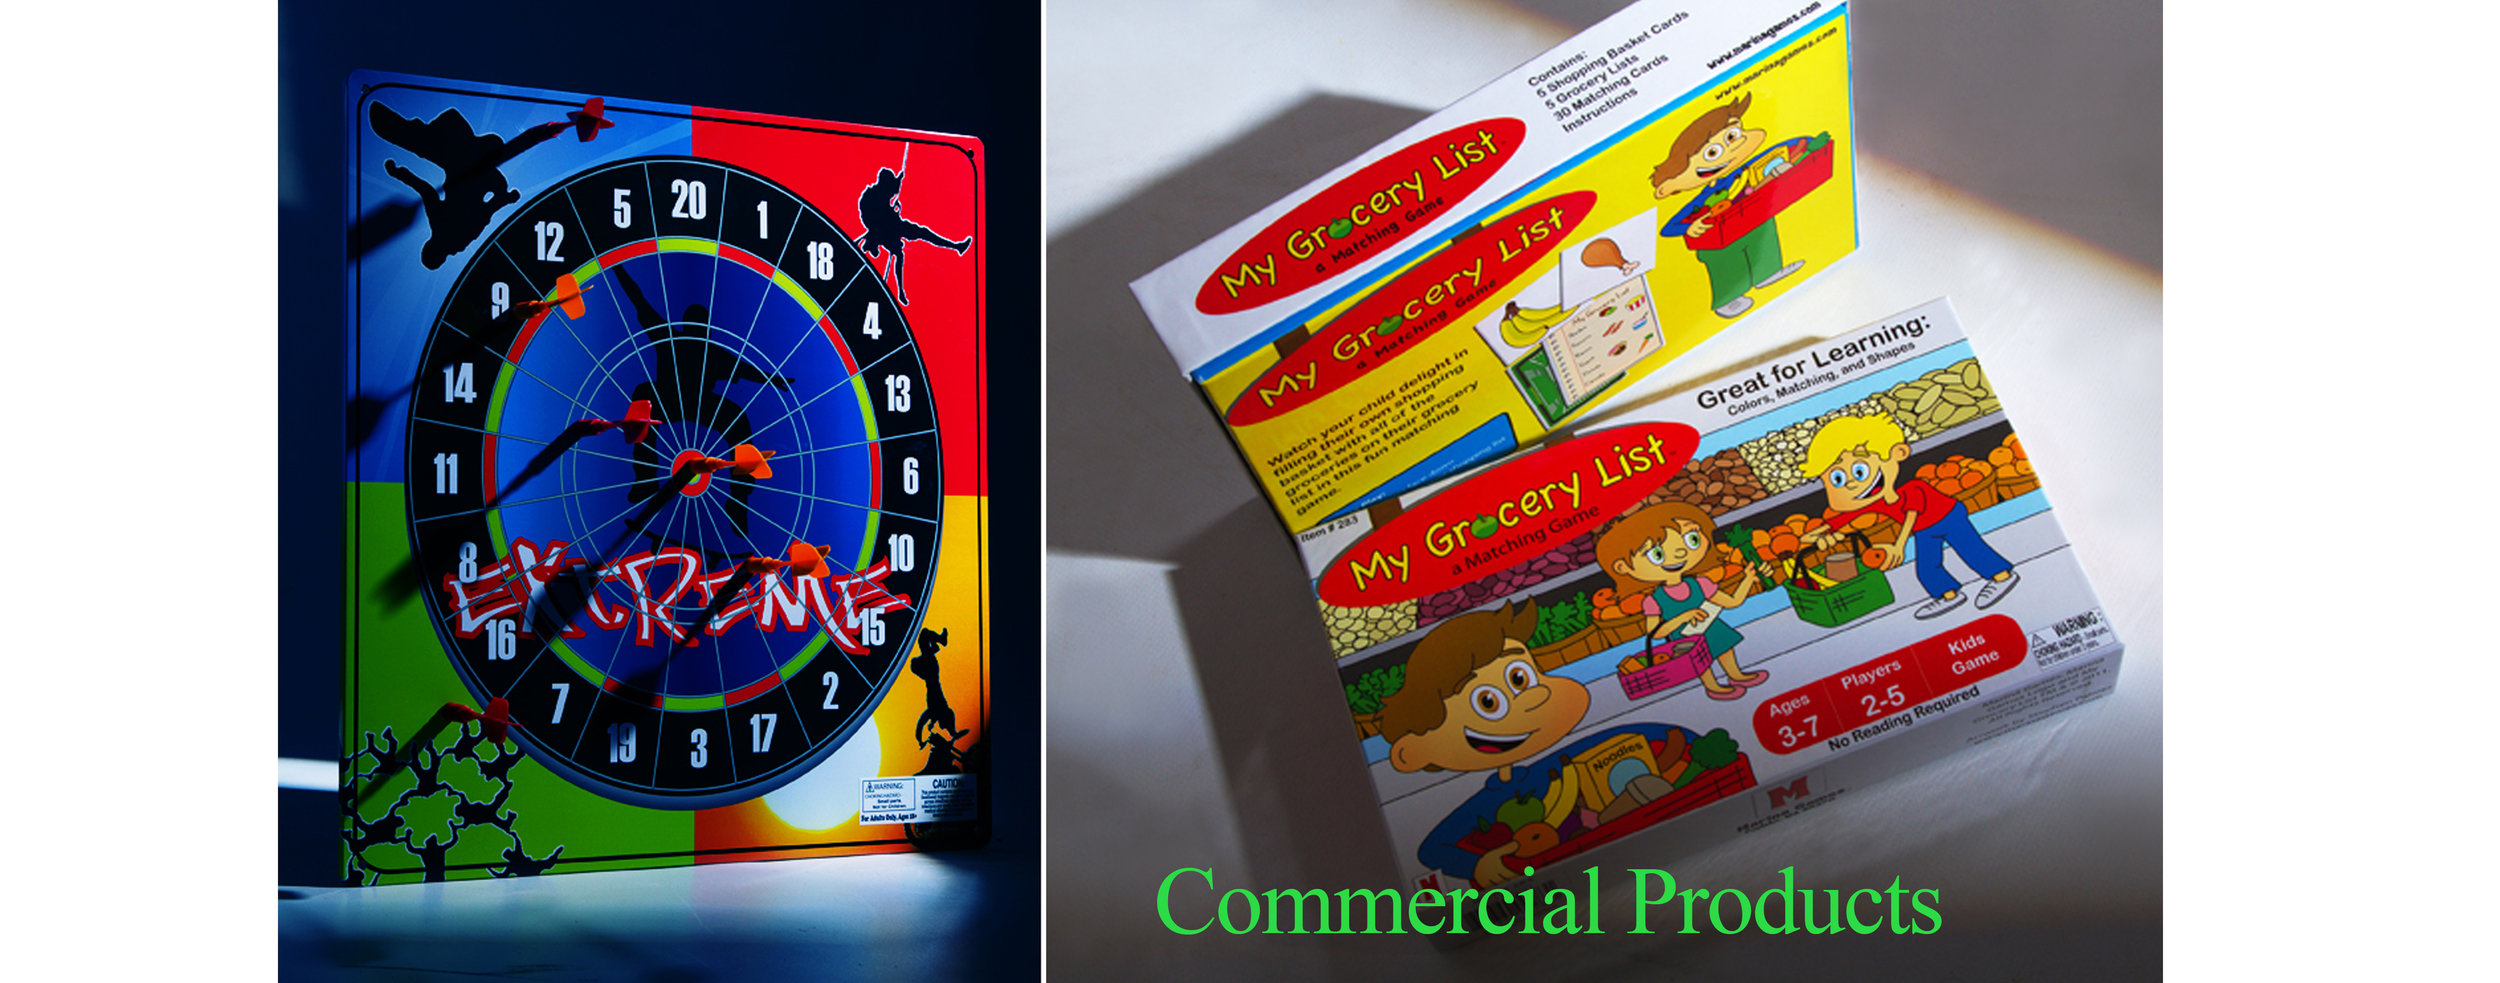 commercial products Professional Photography studio.jpg